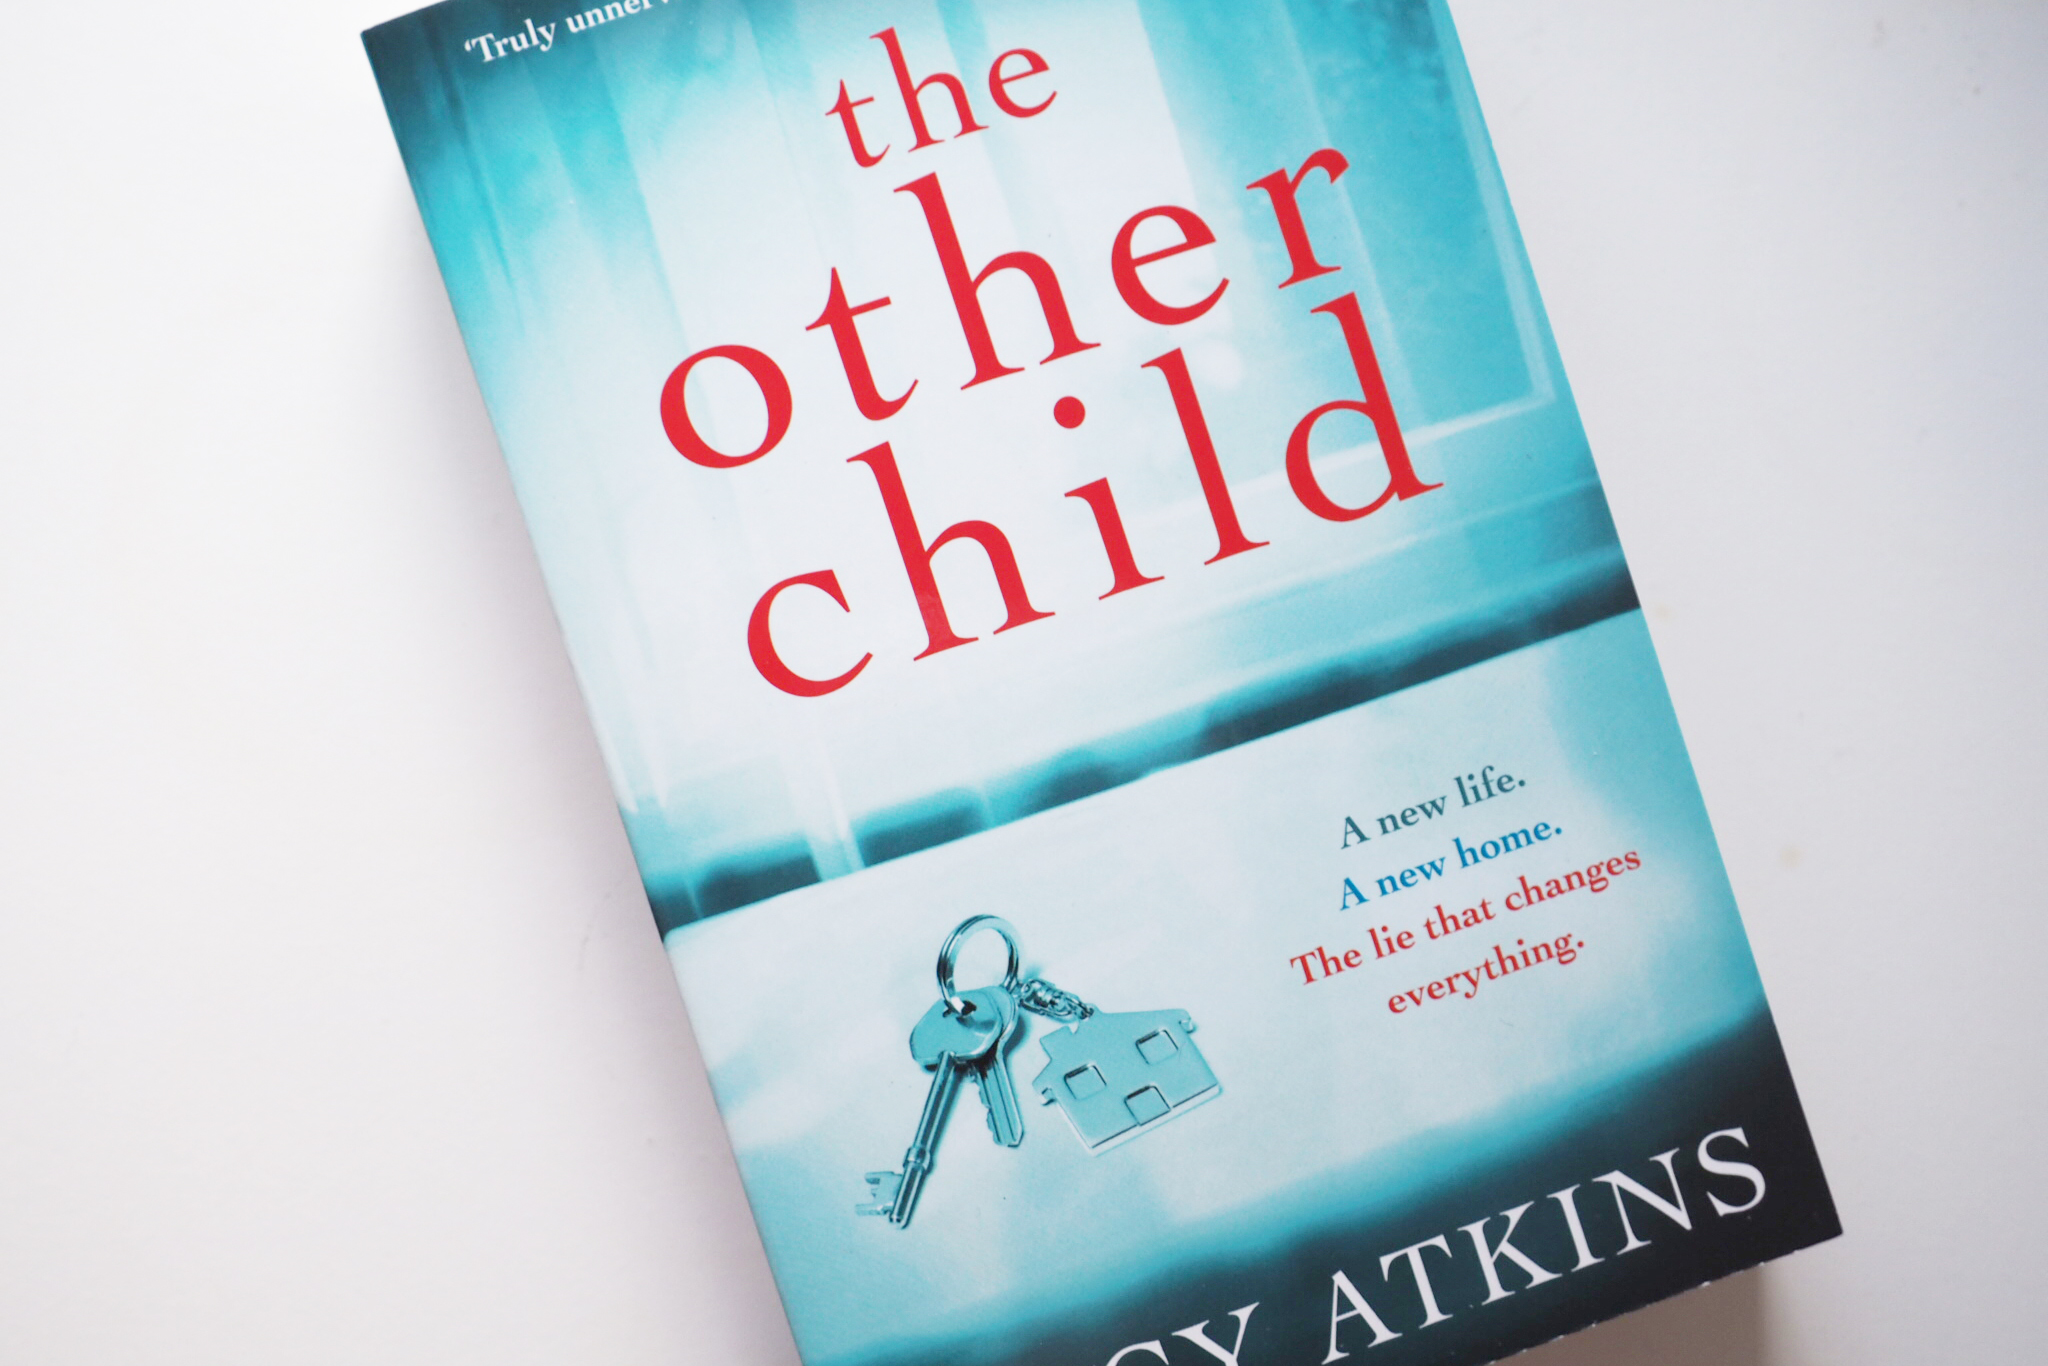 The Other Child - Lucy Atkins